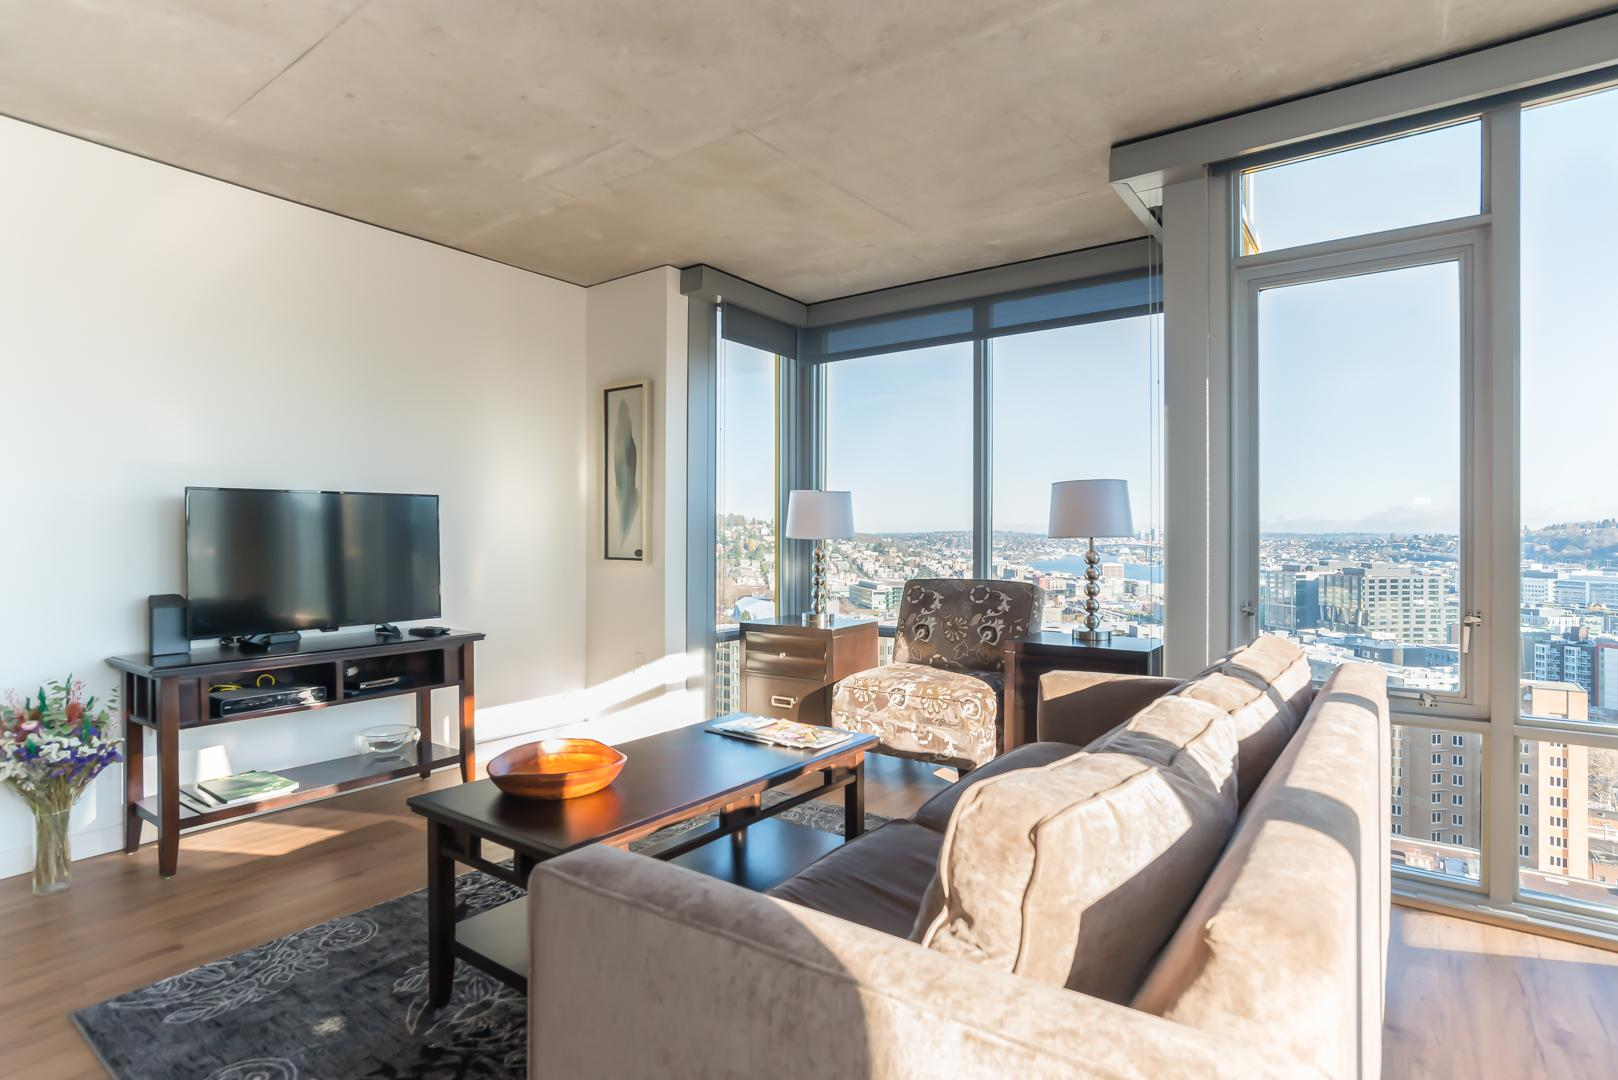 Dimension 1501 - SoBe 3rd Ave Apartments 2 Bedroom